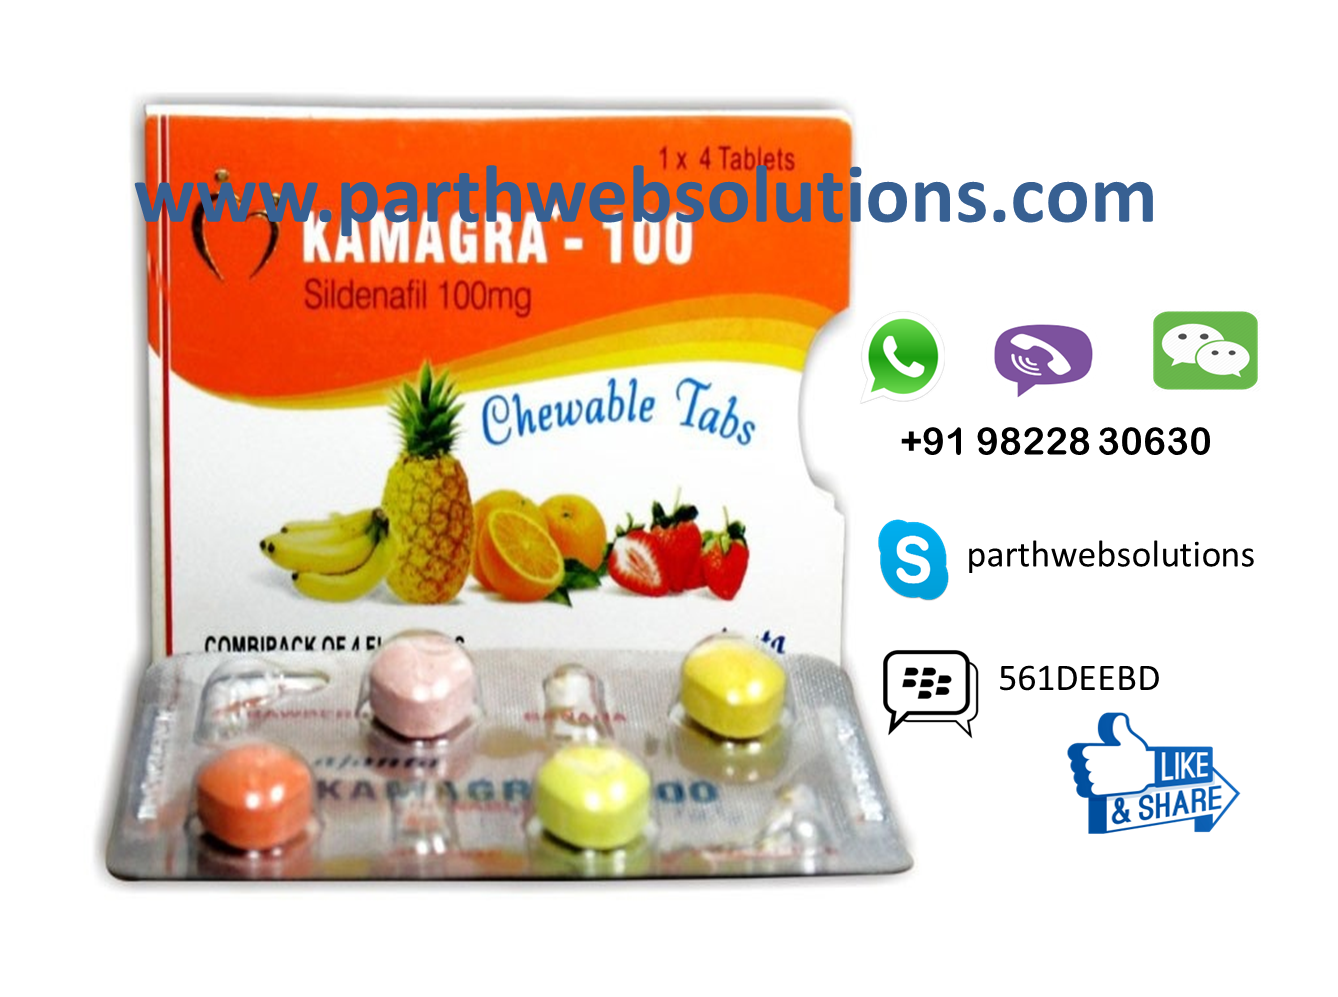 Kamagra Chewable (Sildenafil Citrate Tablets)